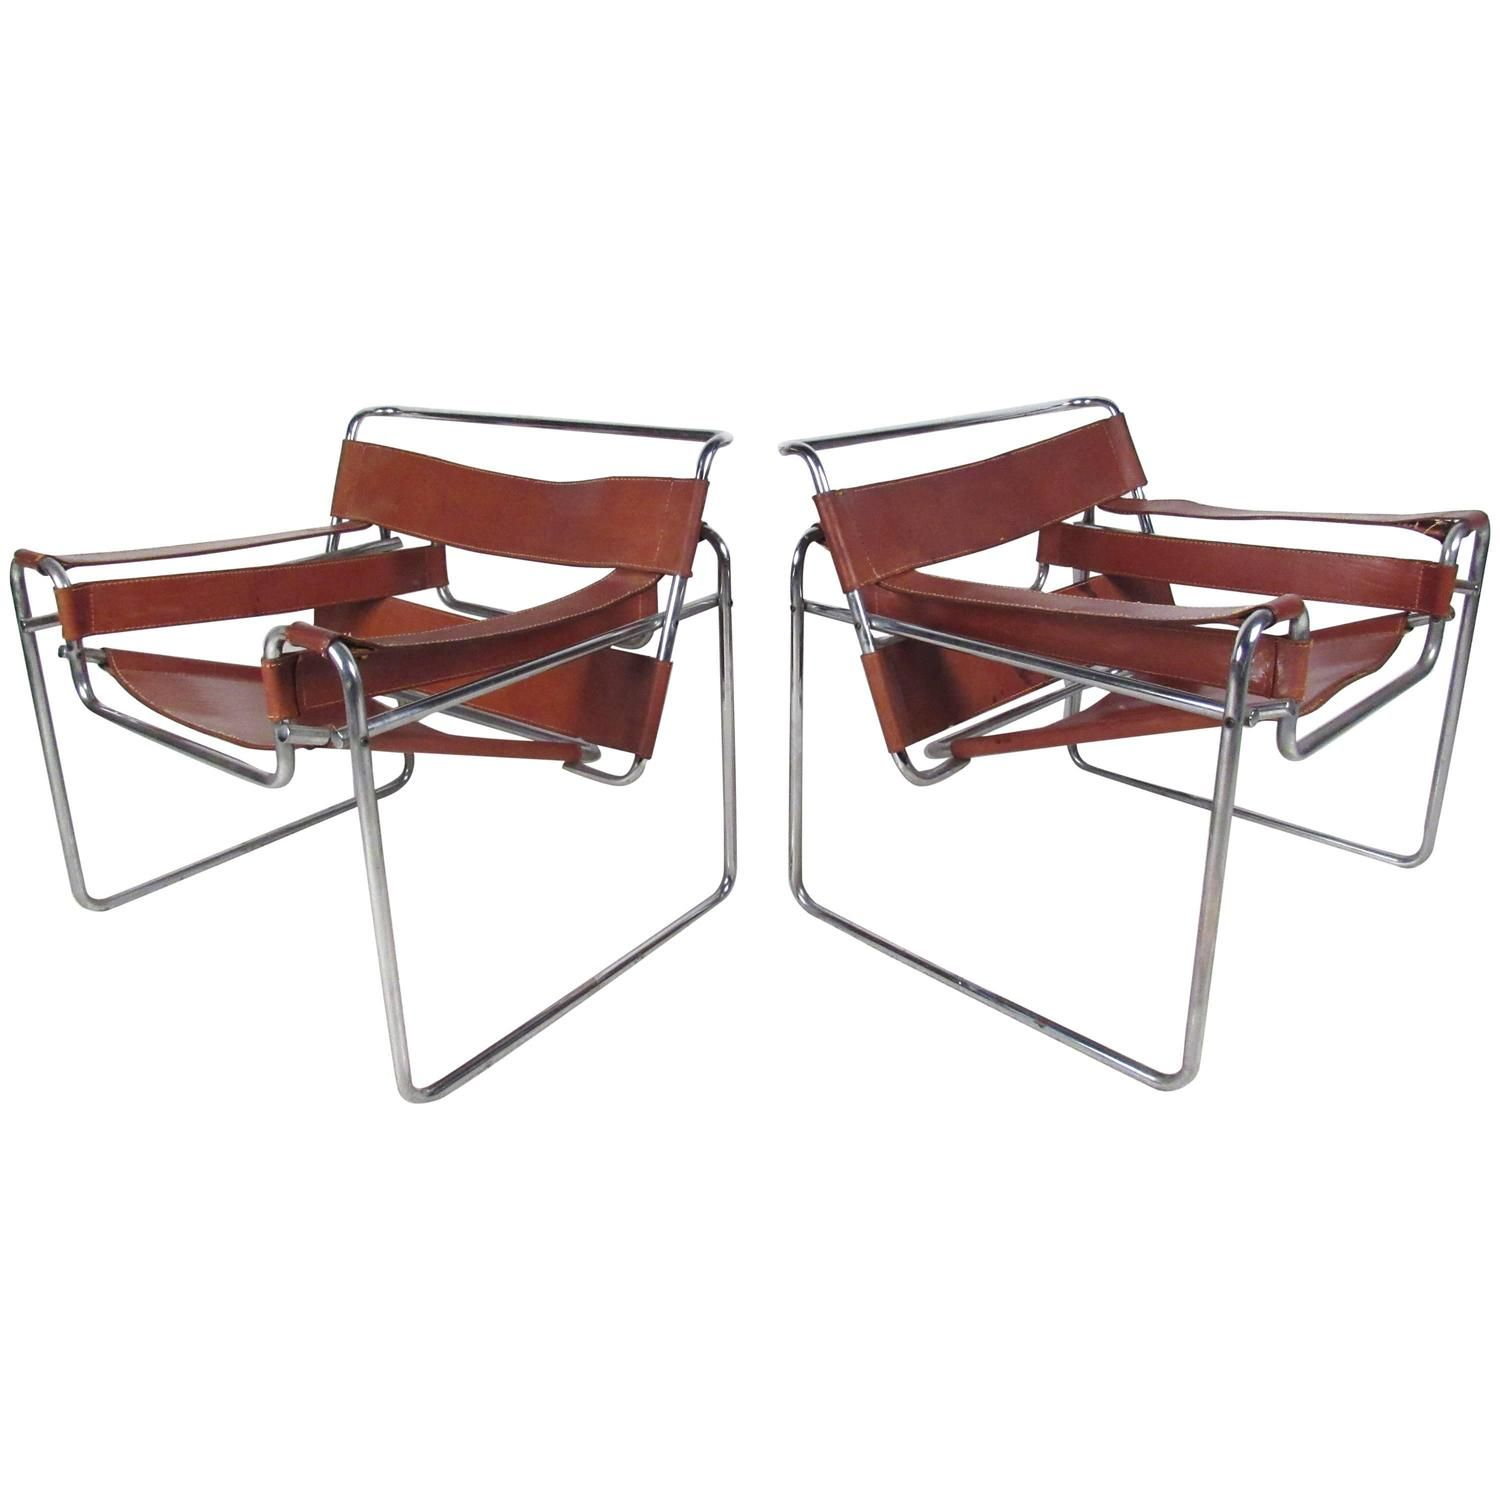 Pair Of Bruer Wassily Style Leather Strap Chairs For Sale At 1stdibs